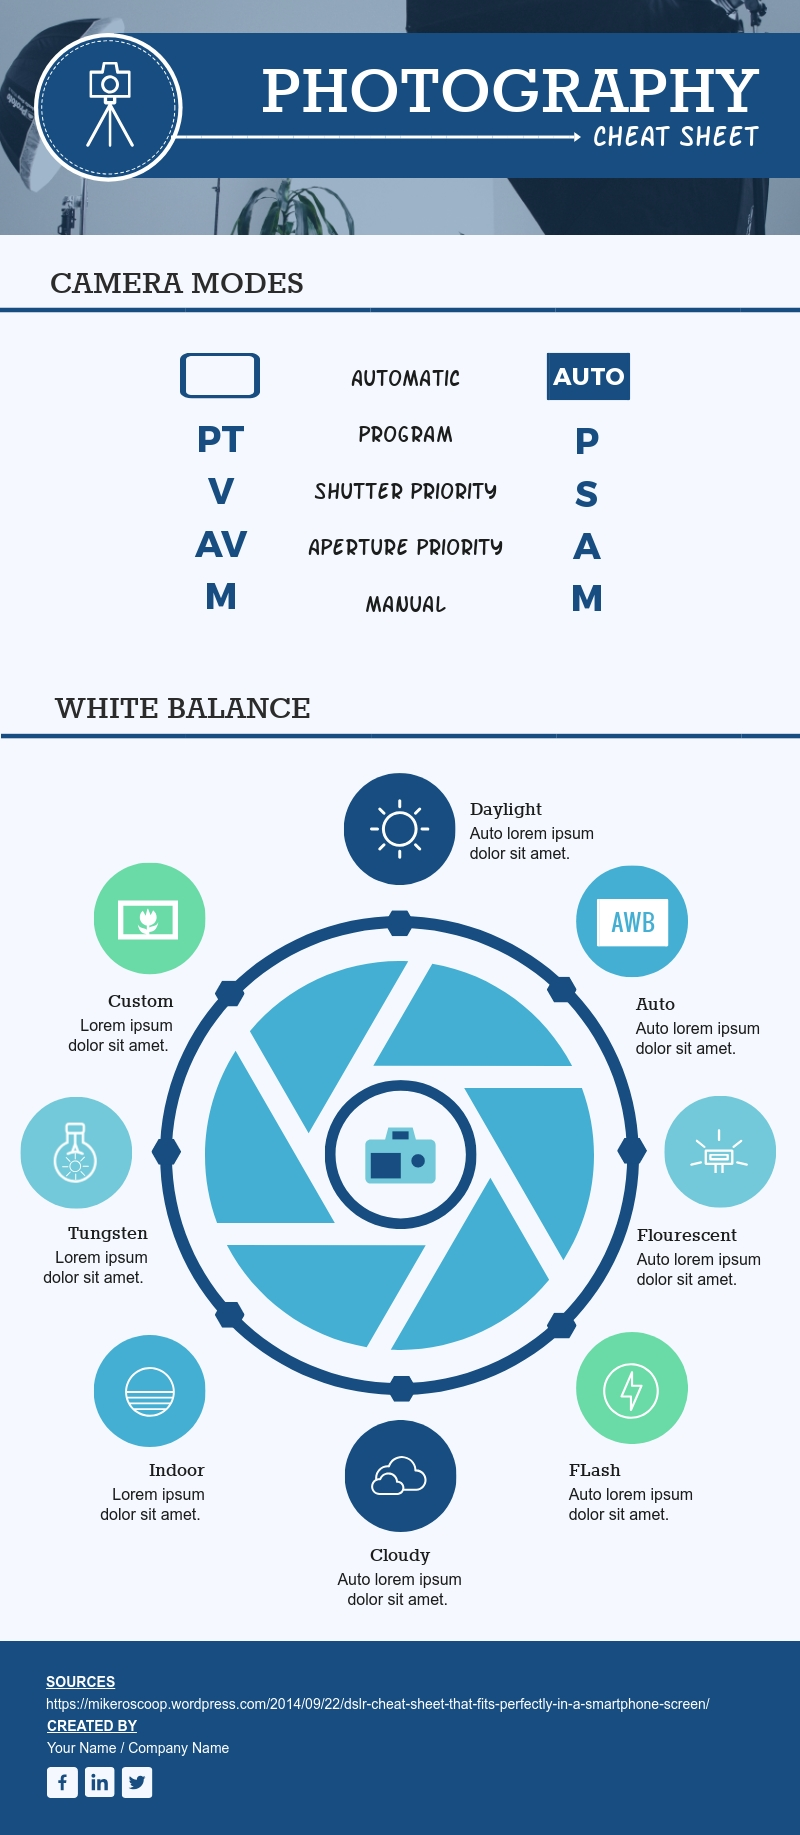 Photography Cheat Sheet - Infographic Template